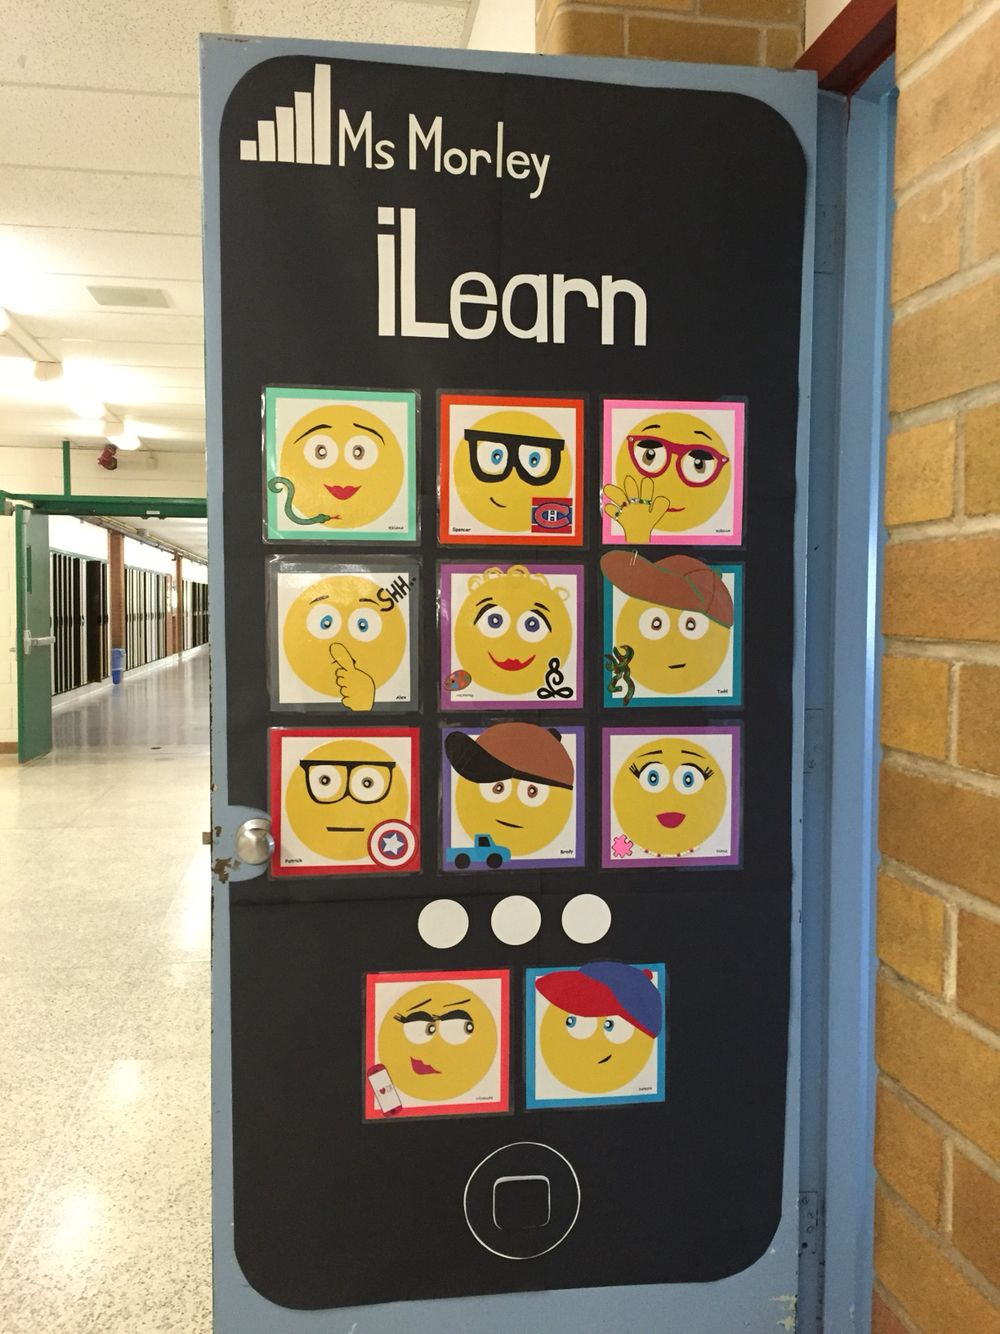 Check out our awesome emoji classroom door my co-workers and I put together. & Check out our awesome emoji classroom door my co-workers and I put ...